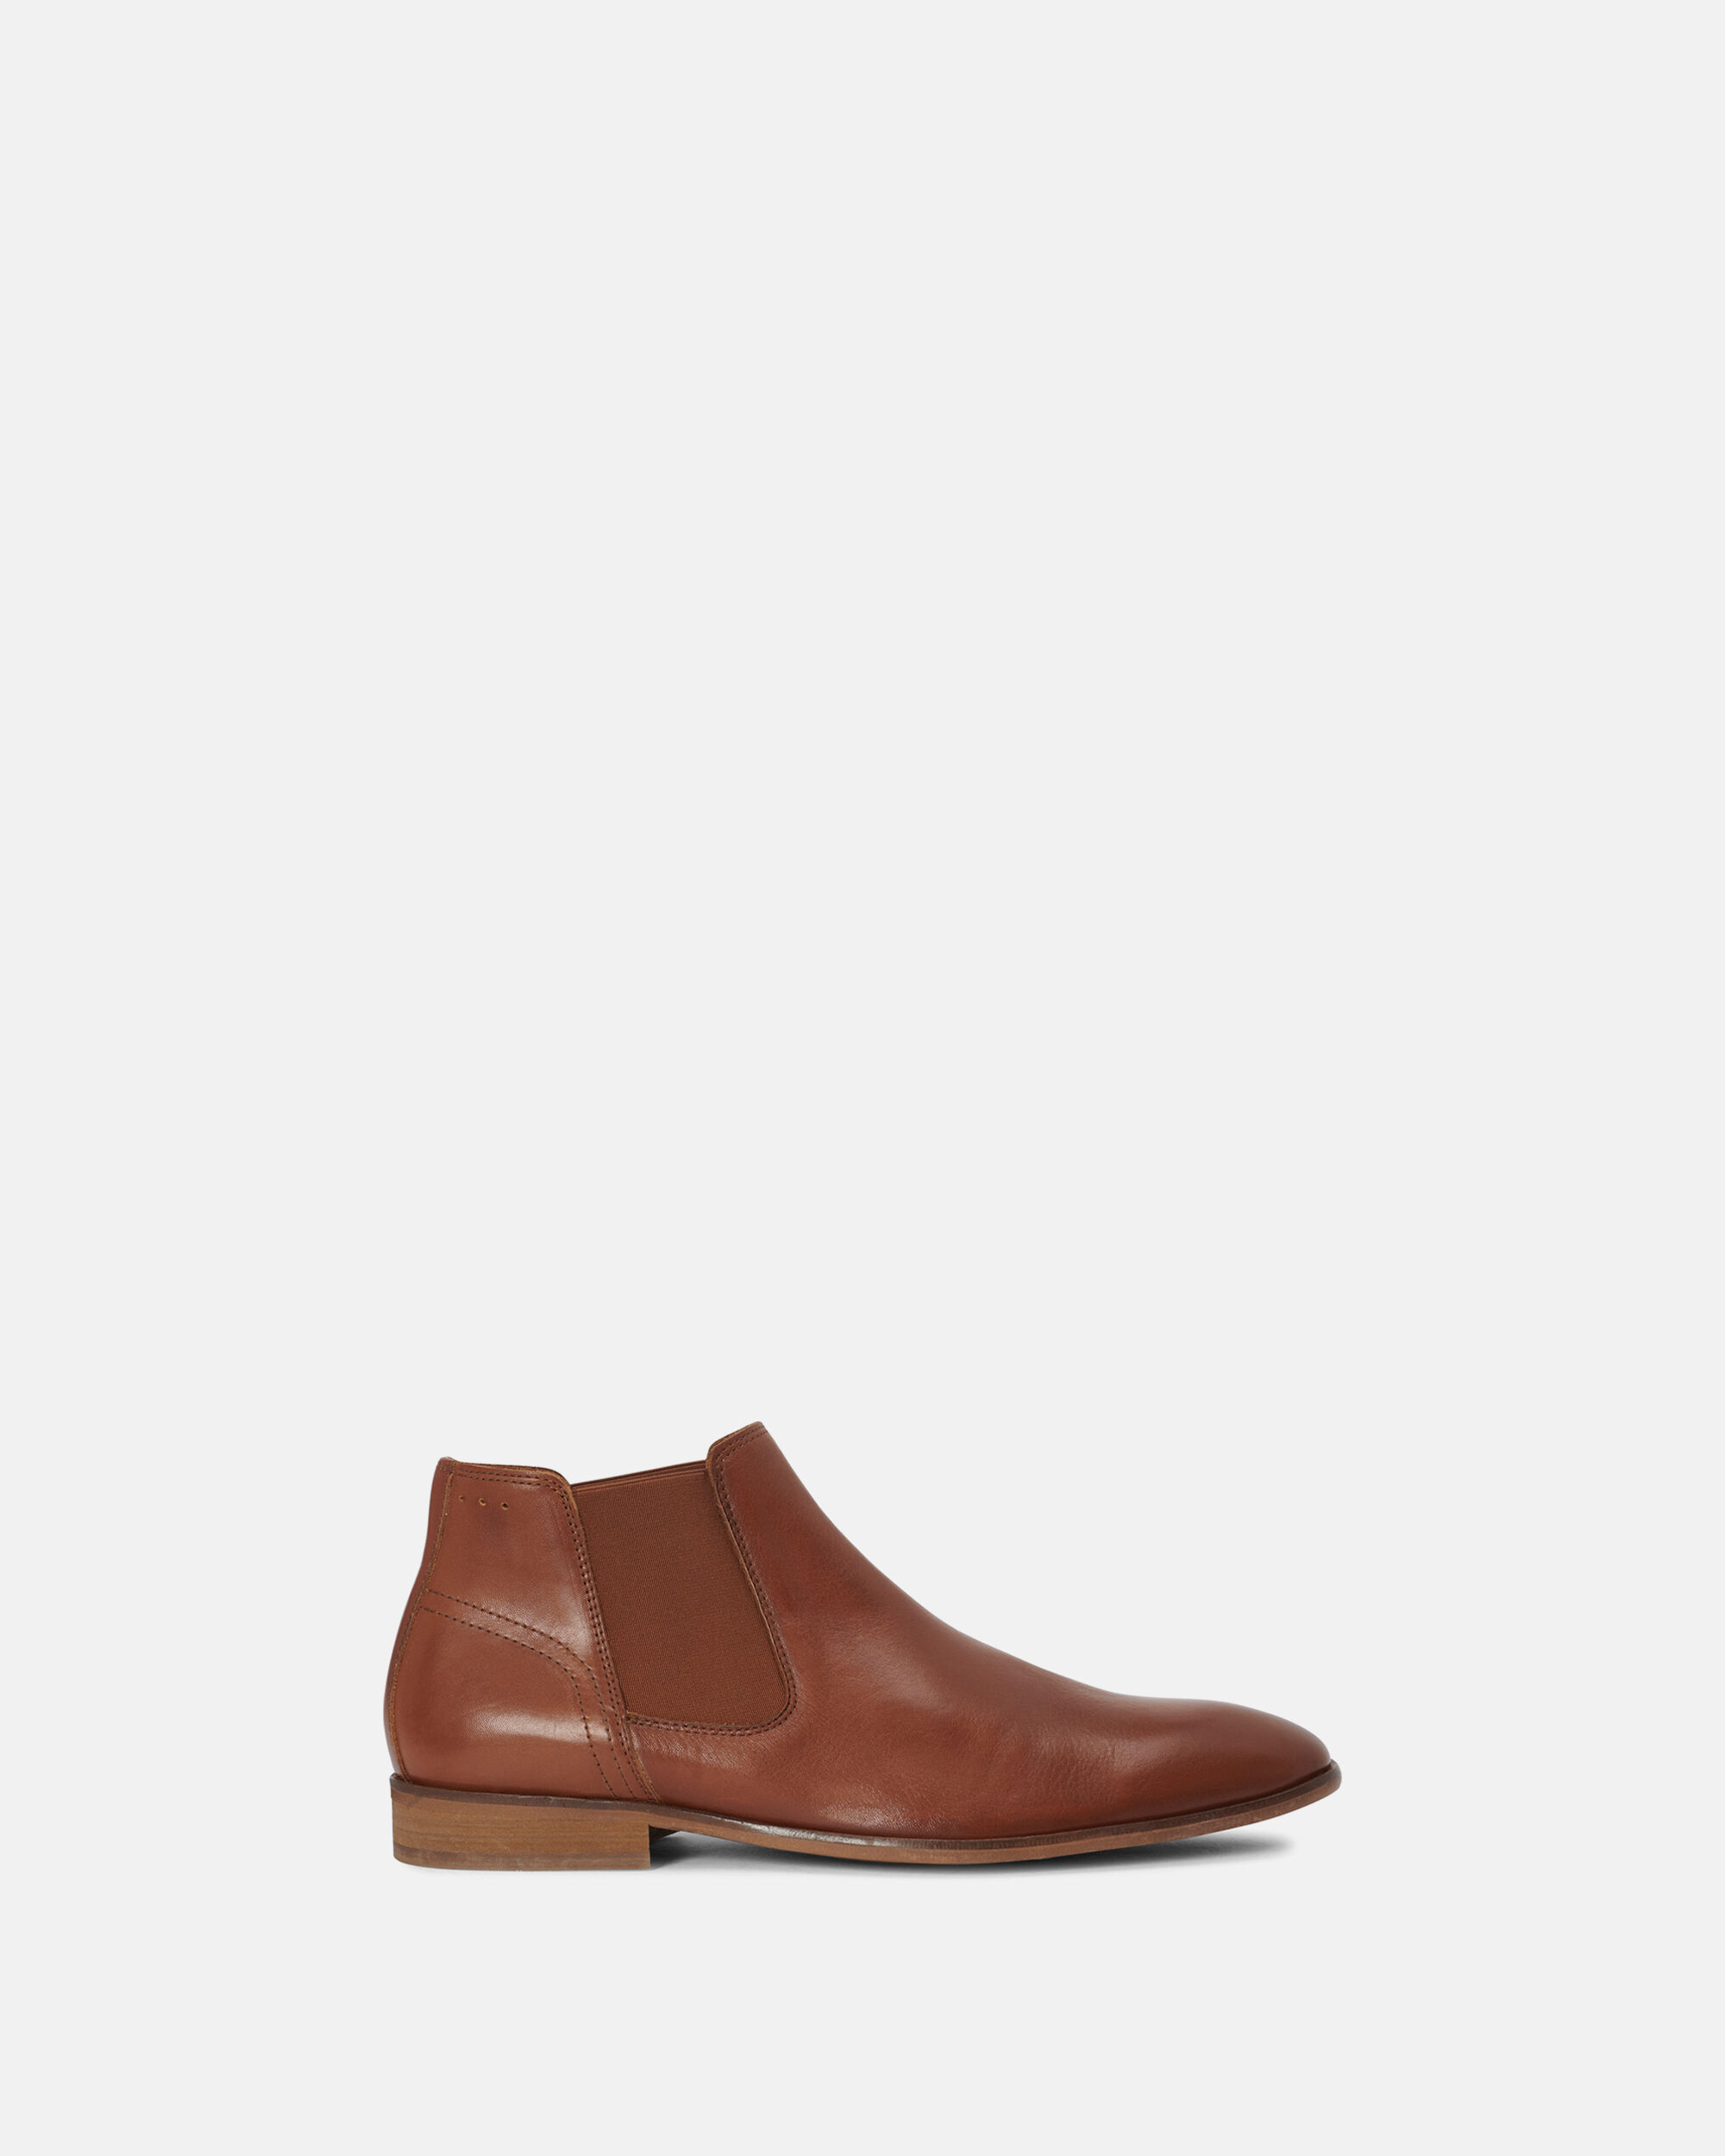 collection collection Chaussures Minelli Chaussures Hommela Hommela Chaussures Minelli collection Hommela Chaussures Minelli SGLUMVpjqz